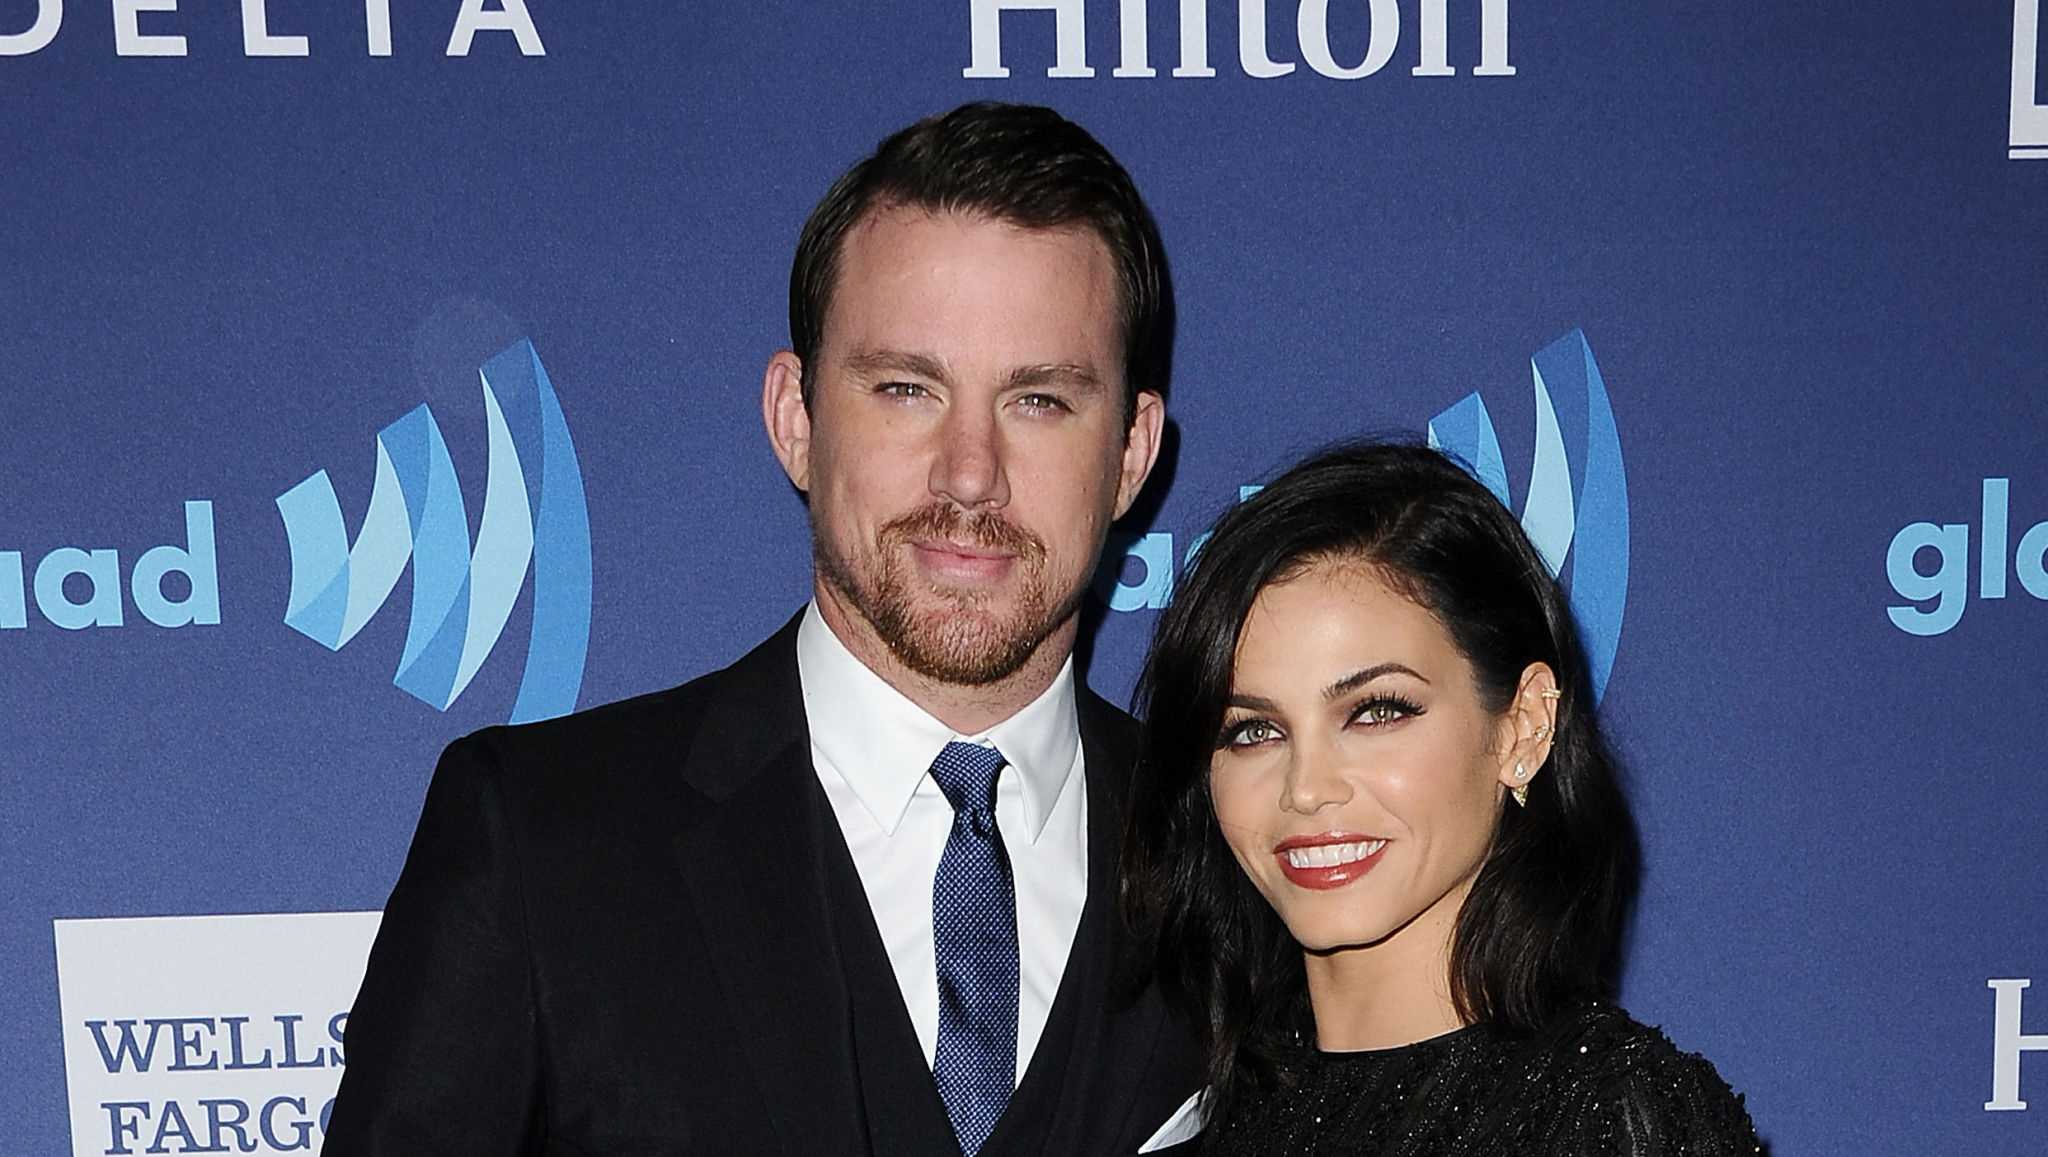 "Channing TatumBack in 2013, when Channing and wife Jenna Dewan Tatum's daughter, Everly, was just a newborn, he told Good Morning America that Jenna was ""good, I mean, she's tough as nails. Those first few weeks are hard, but she's just swimming through them."""